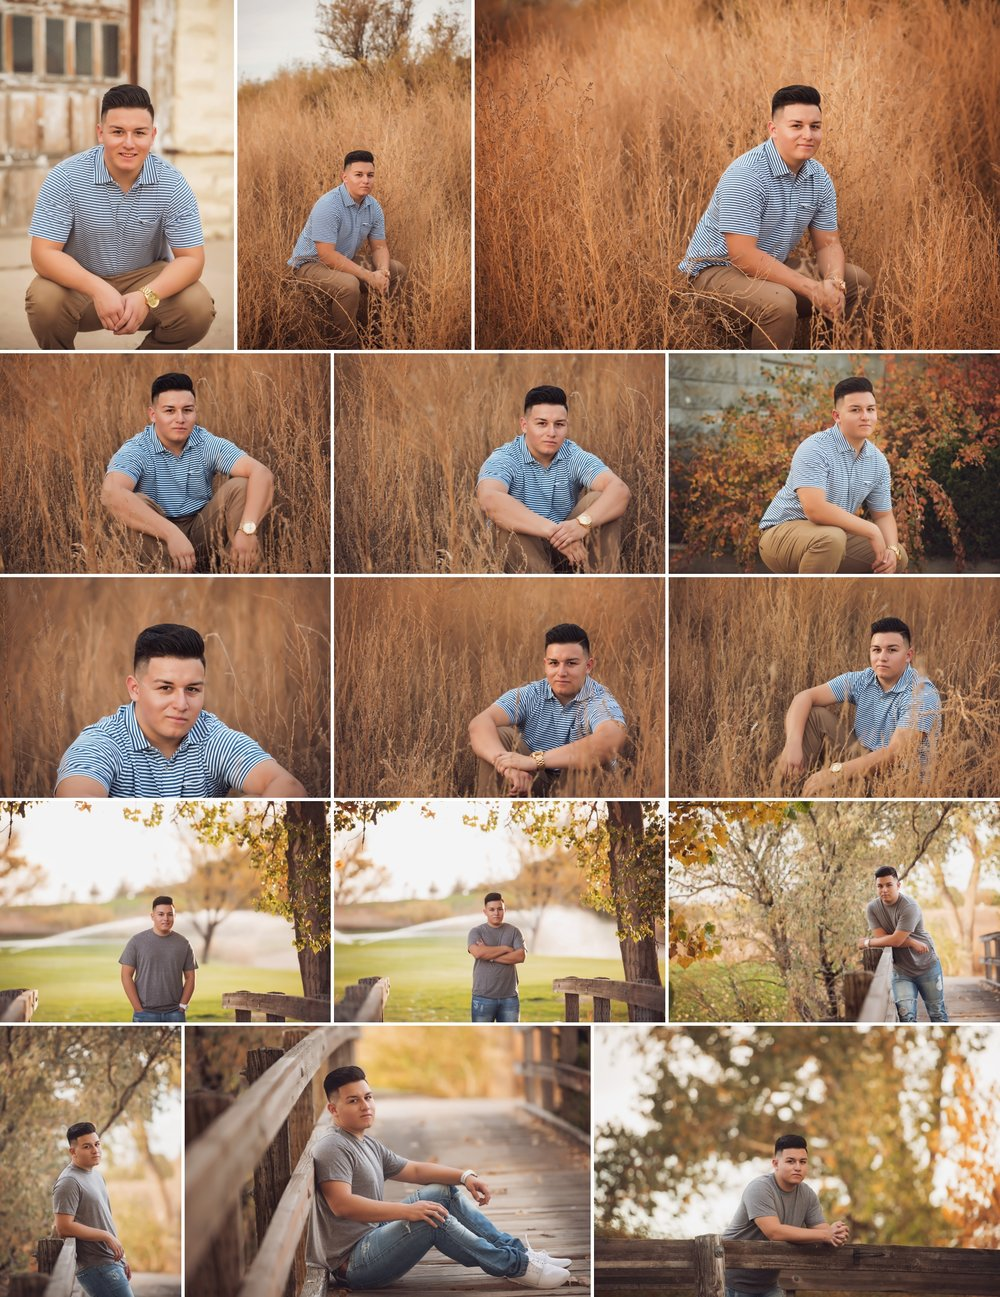 southwest-kansas-senior-photographer 2.jpg